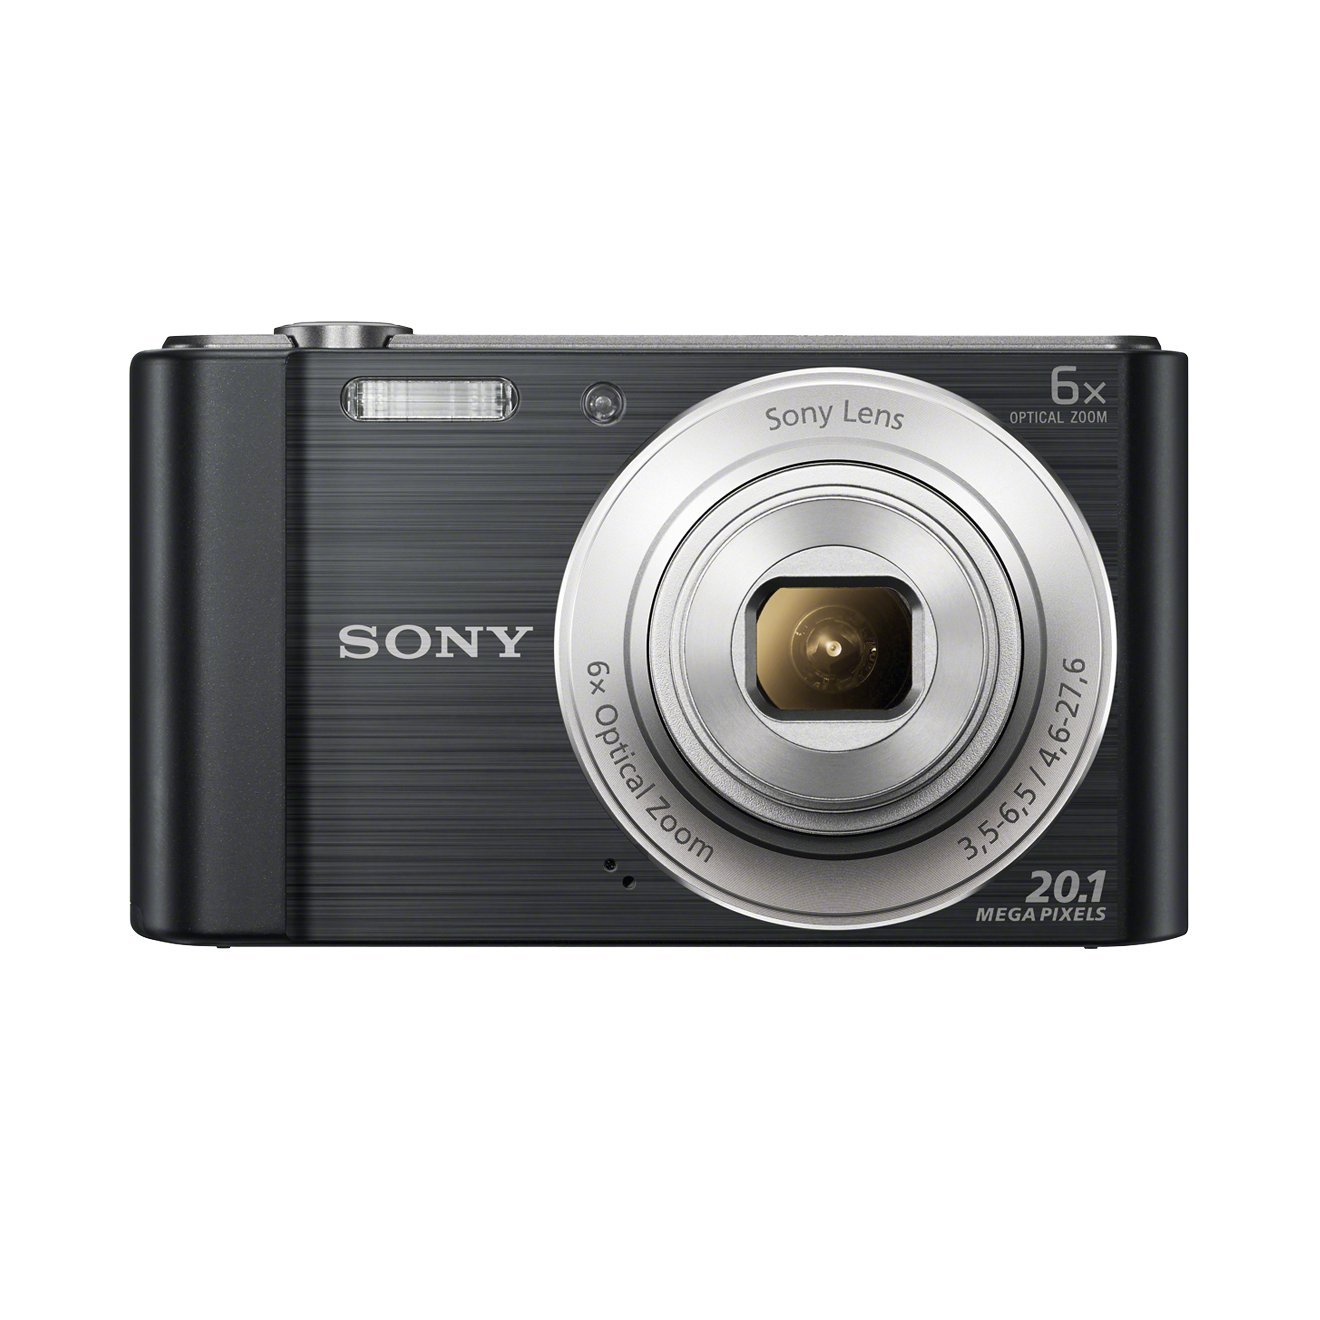 Sony DSCW810B.CEH Digital Compact Camera (20.1 MP, 6 x Zoom, 2.7 LCD, 720p HD, 26 mm Sony G Lens) - Black